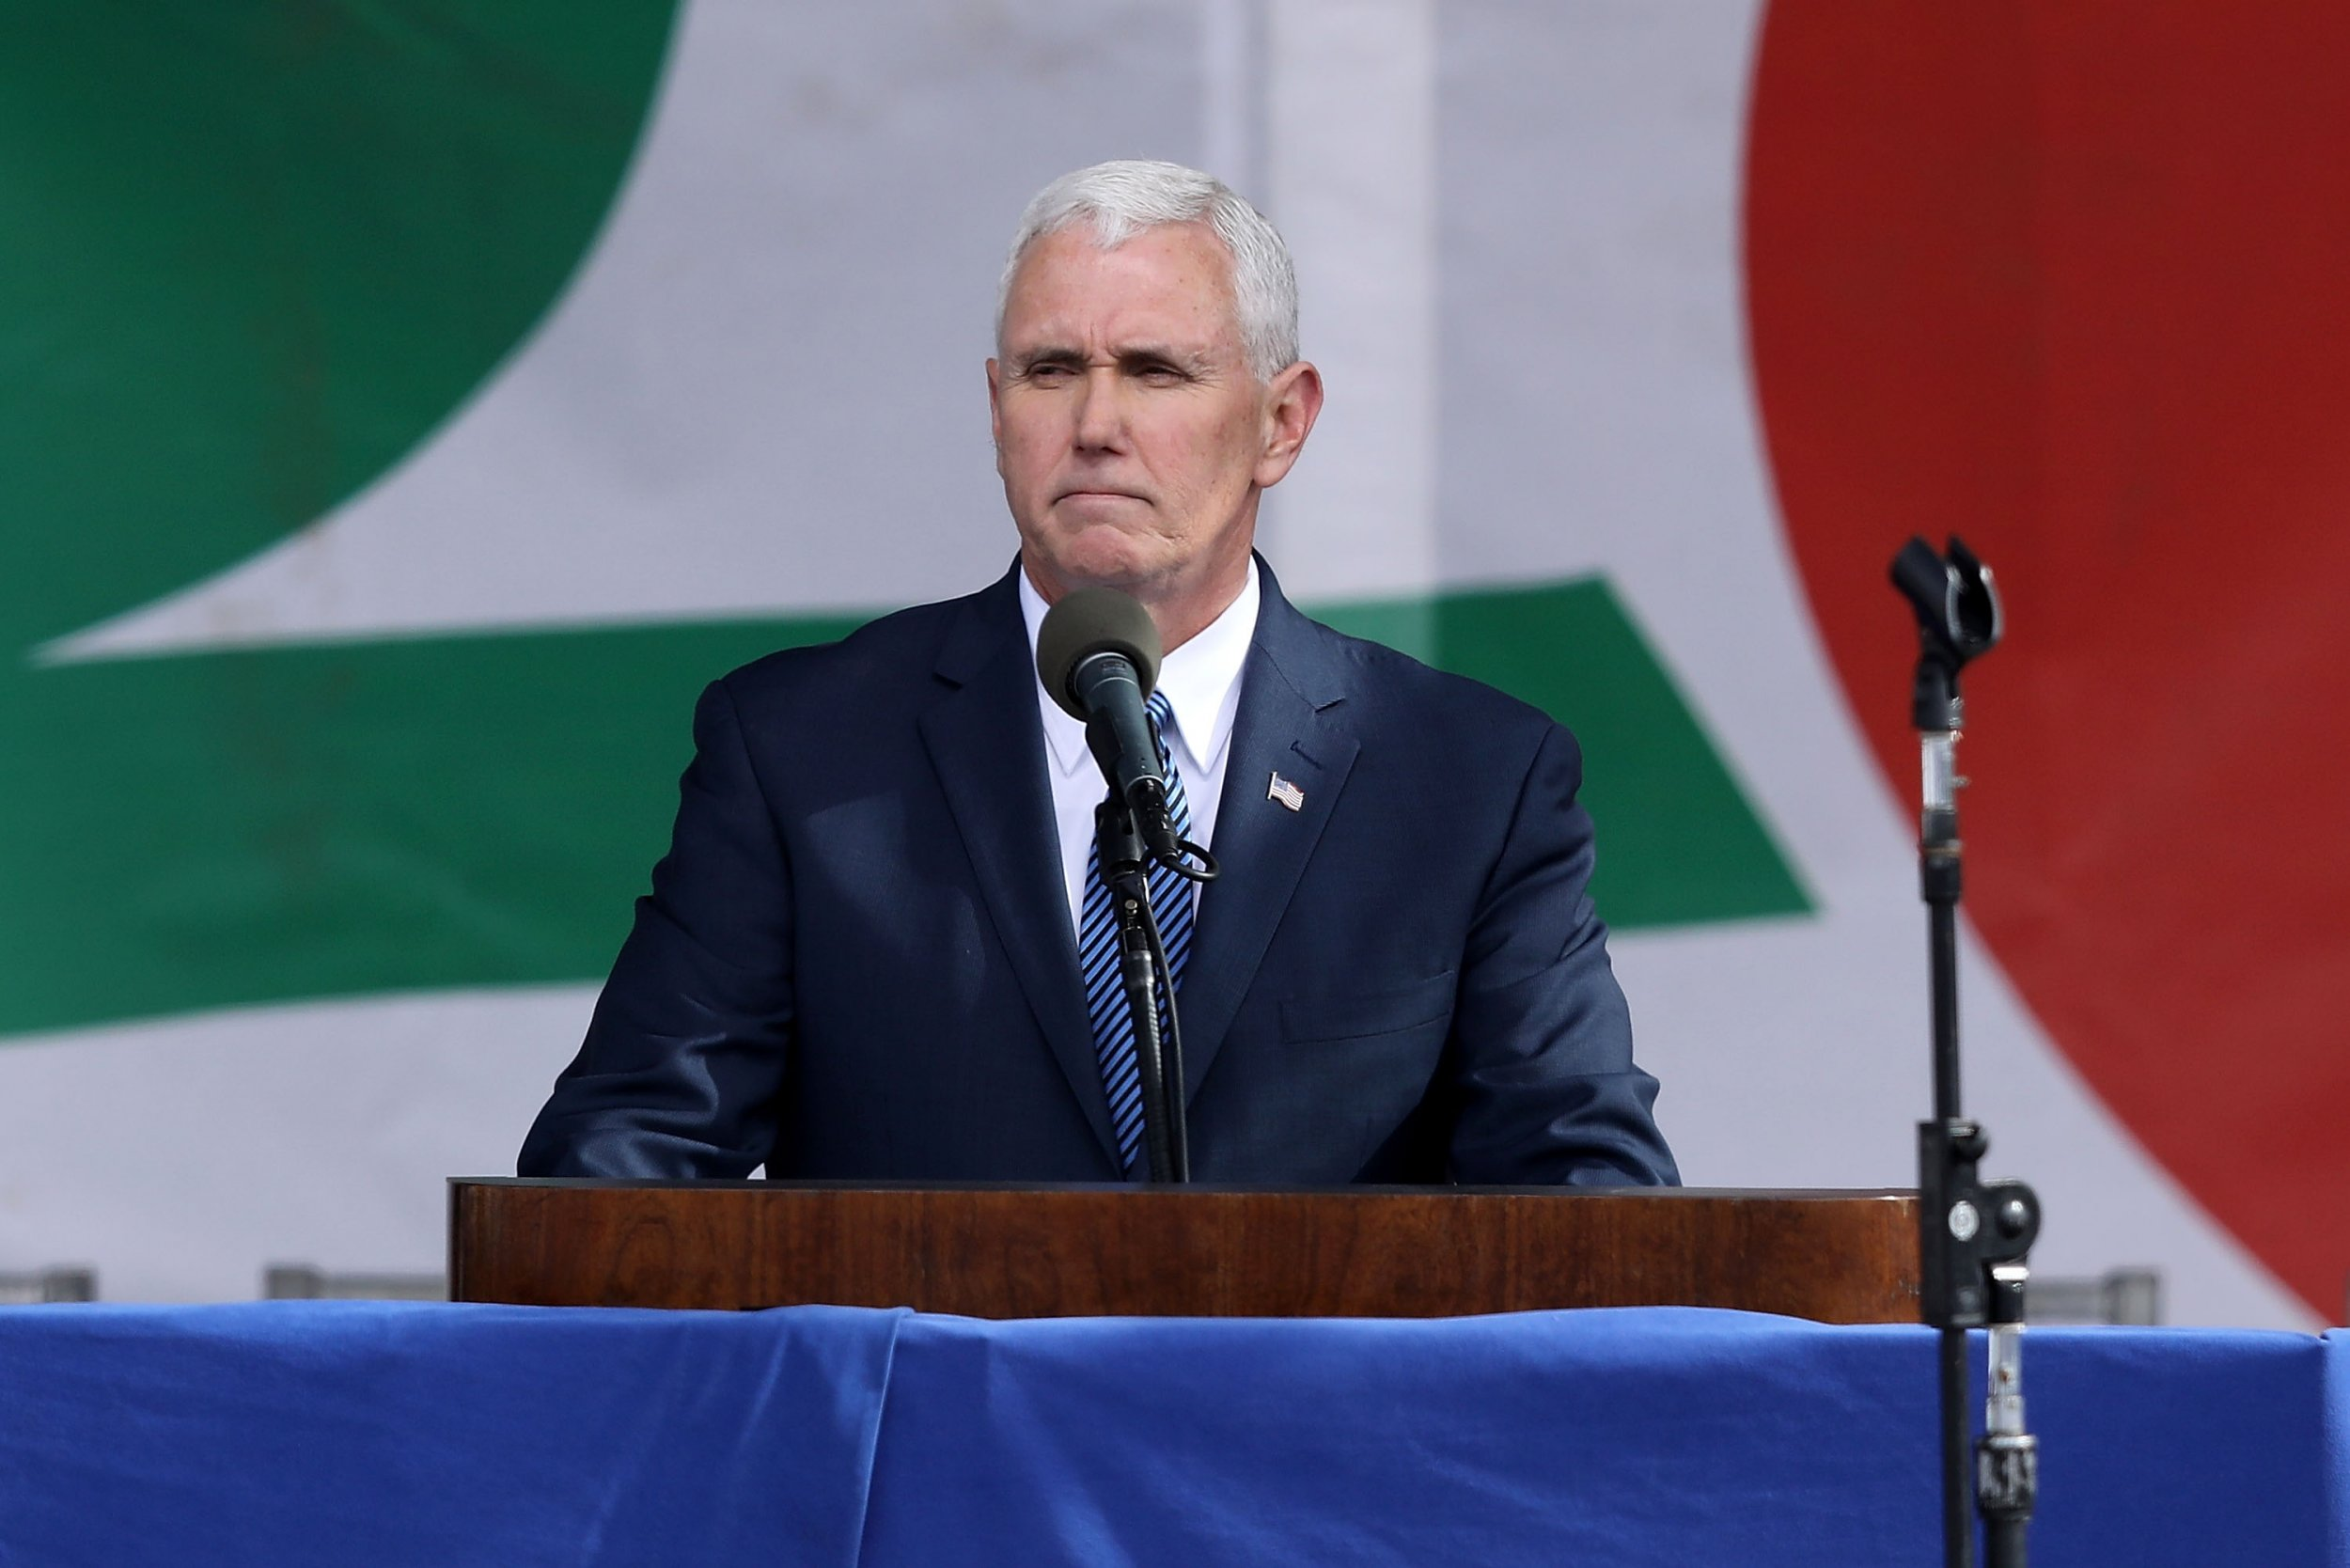 mike pence march for life live stream rose dinner